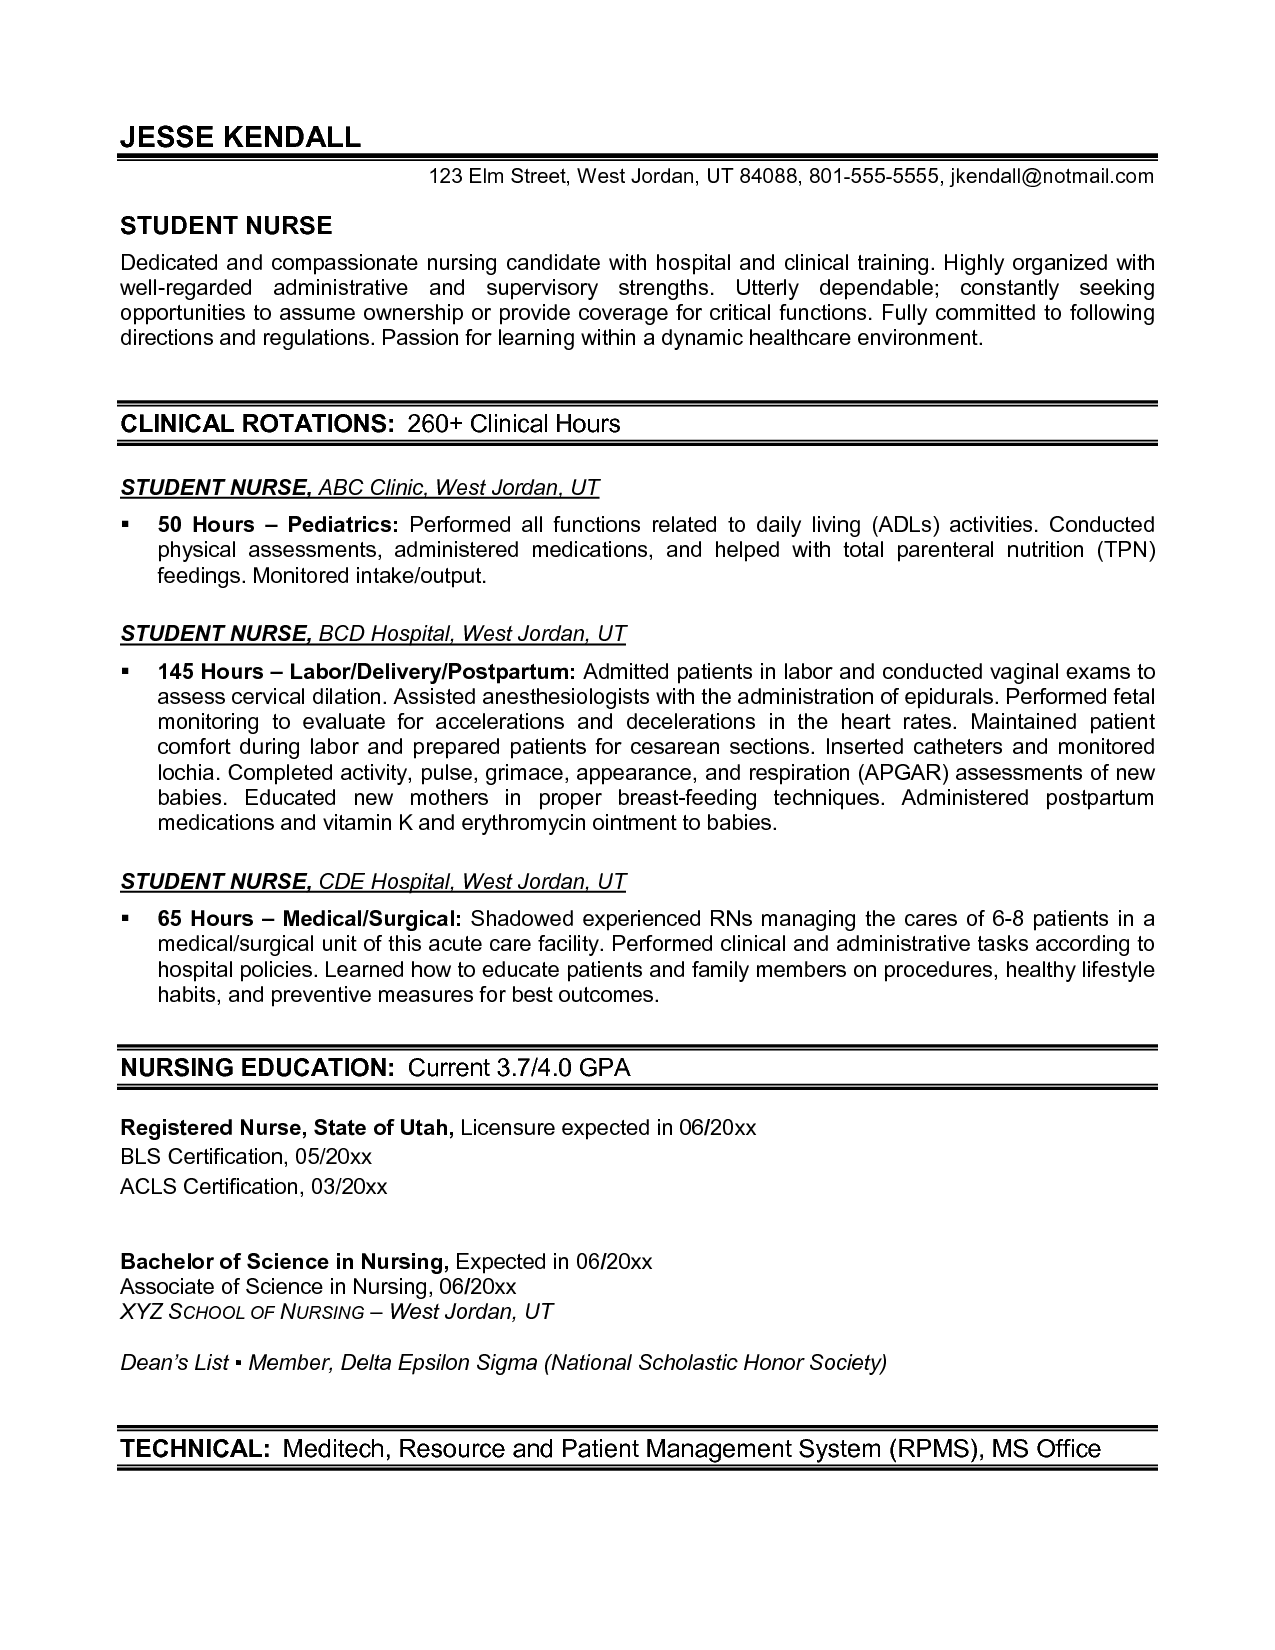 Resume Education Example Cool Resume Template Nursing  Nursing  Pinterest  Nursing Resume Decorating Inspiration